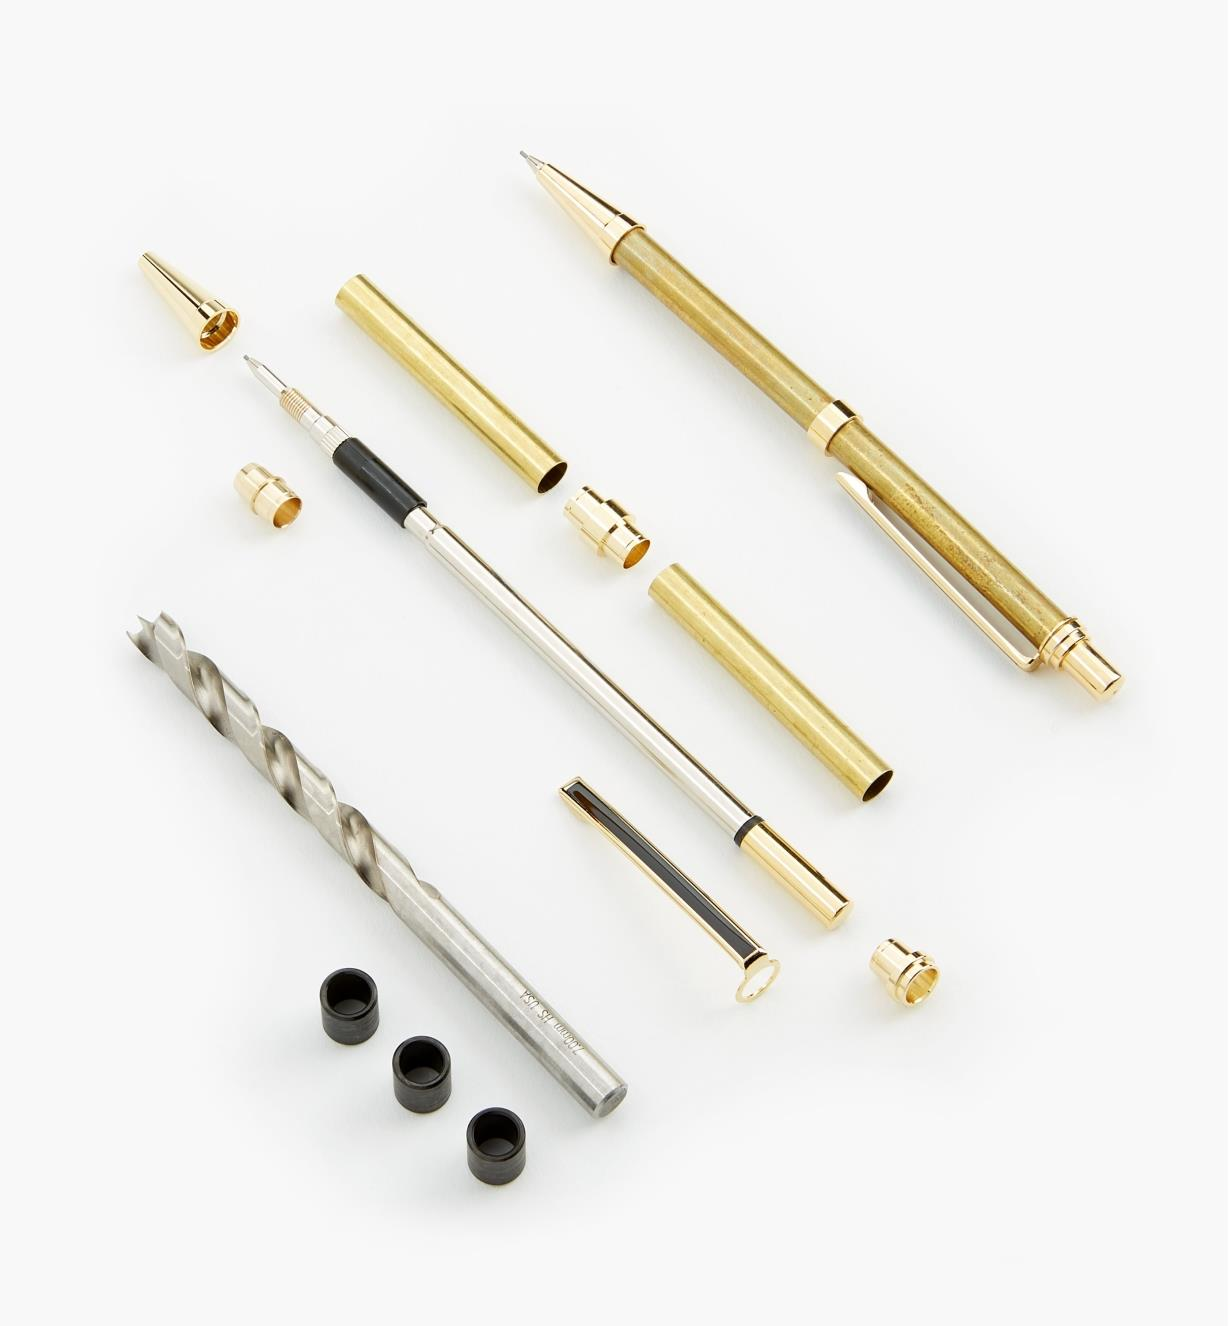 88K7729 - Slim Pencil Starter Kit, Gold